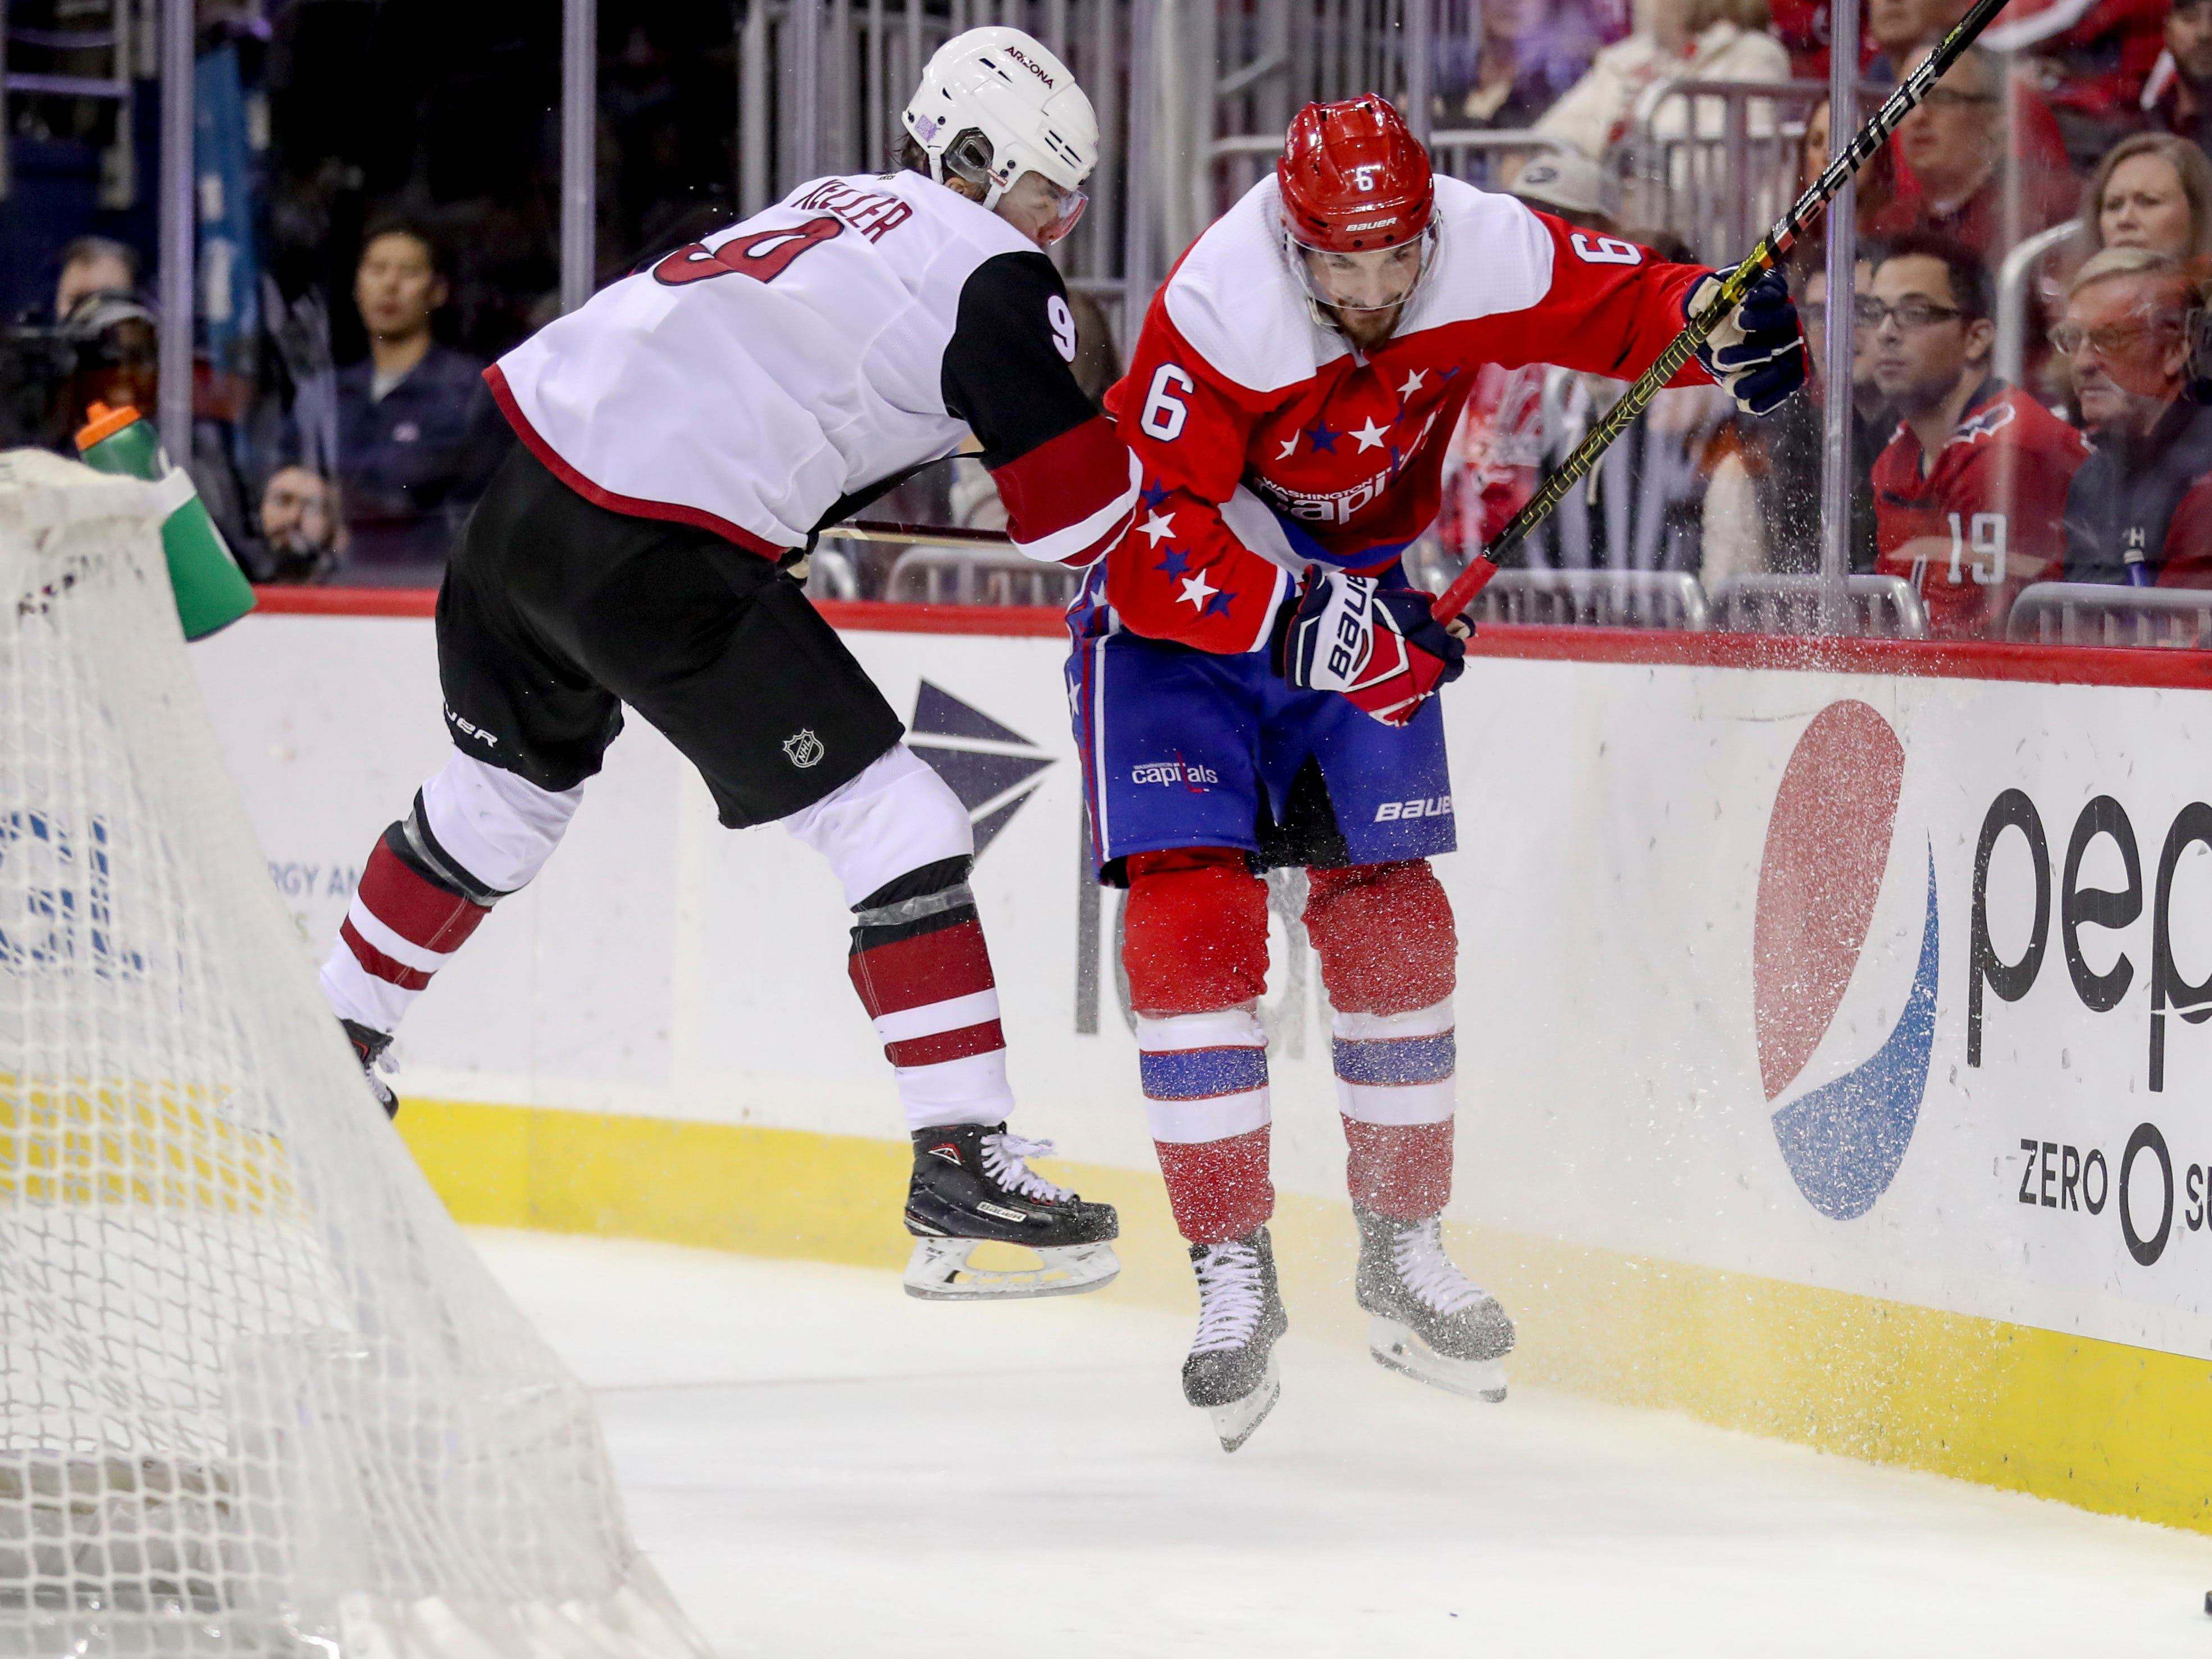 Arizona Coyotes center Clayton Keller and Washington Capitals defenseman Michal Kempny collide in the third period of an NHL hockey game between the Washington Capitals and the Arizona Coyotes, Sunday, Nov. 11, 2018 in Washington. The Coyotes won 4-1. (AP Photo/Andrew Harnik)